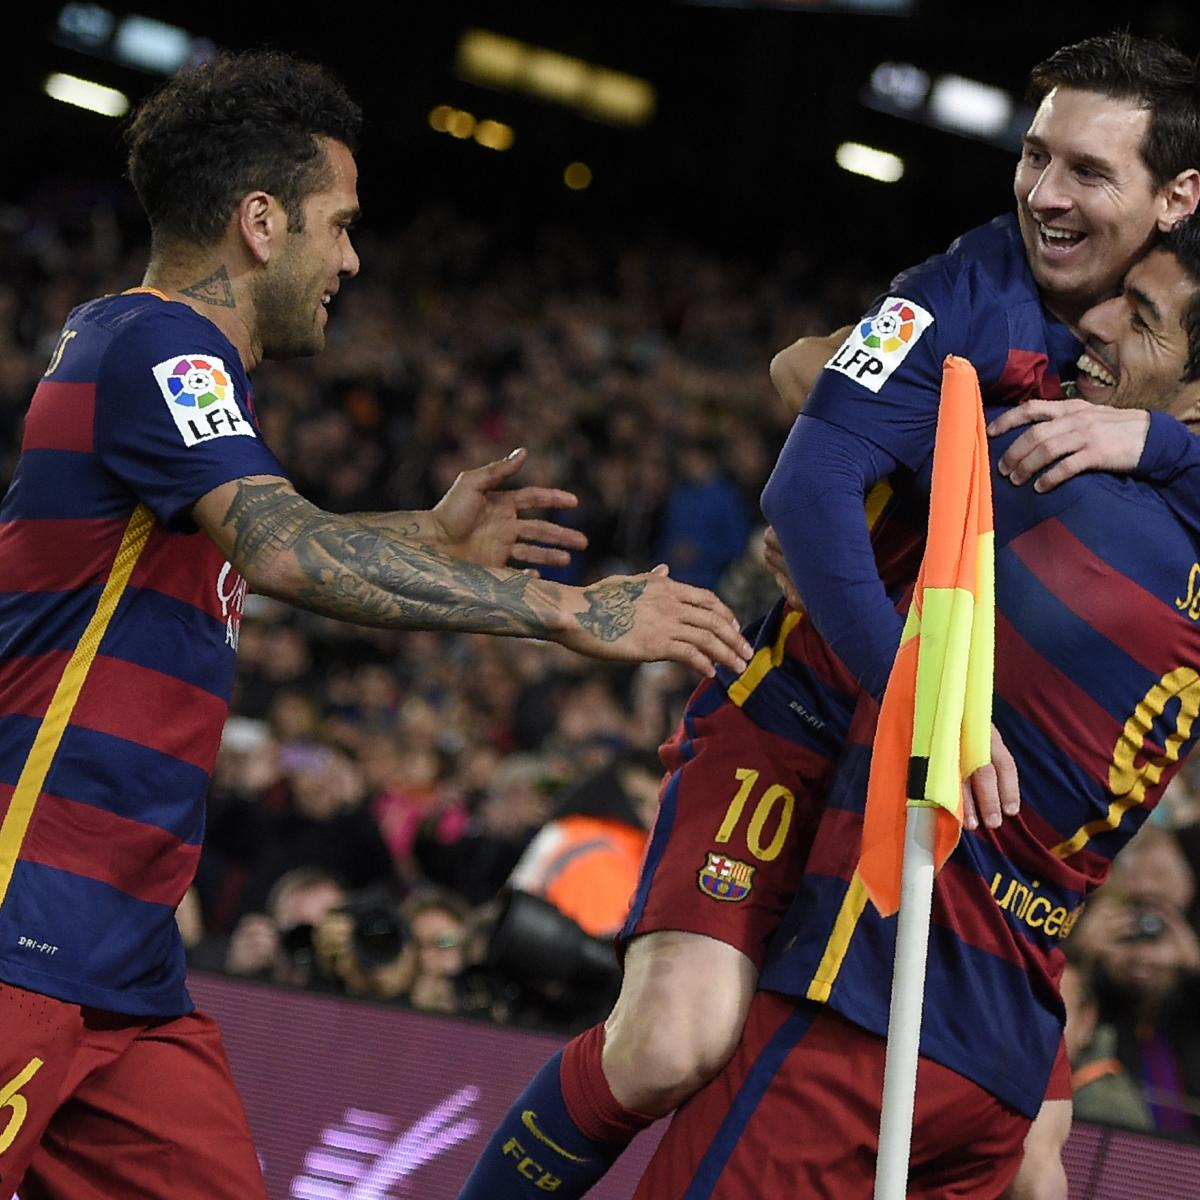 Celta Vigo Vs Barcelona Direct: Barcelona Vs. Celta Vigo: Score, Reaction From 2016 La